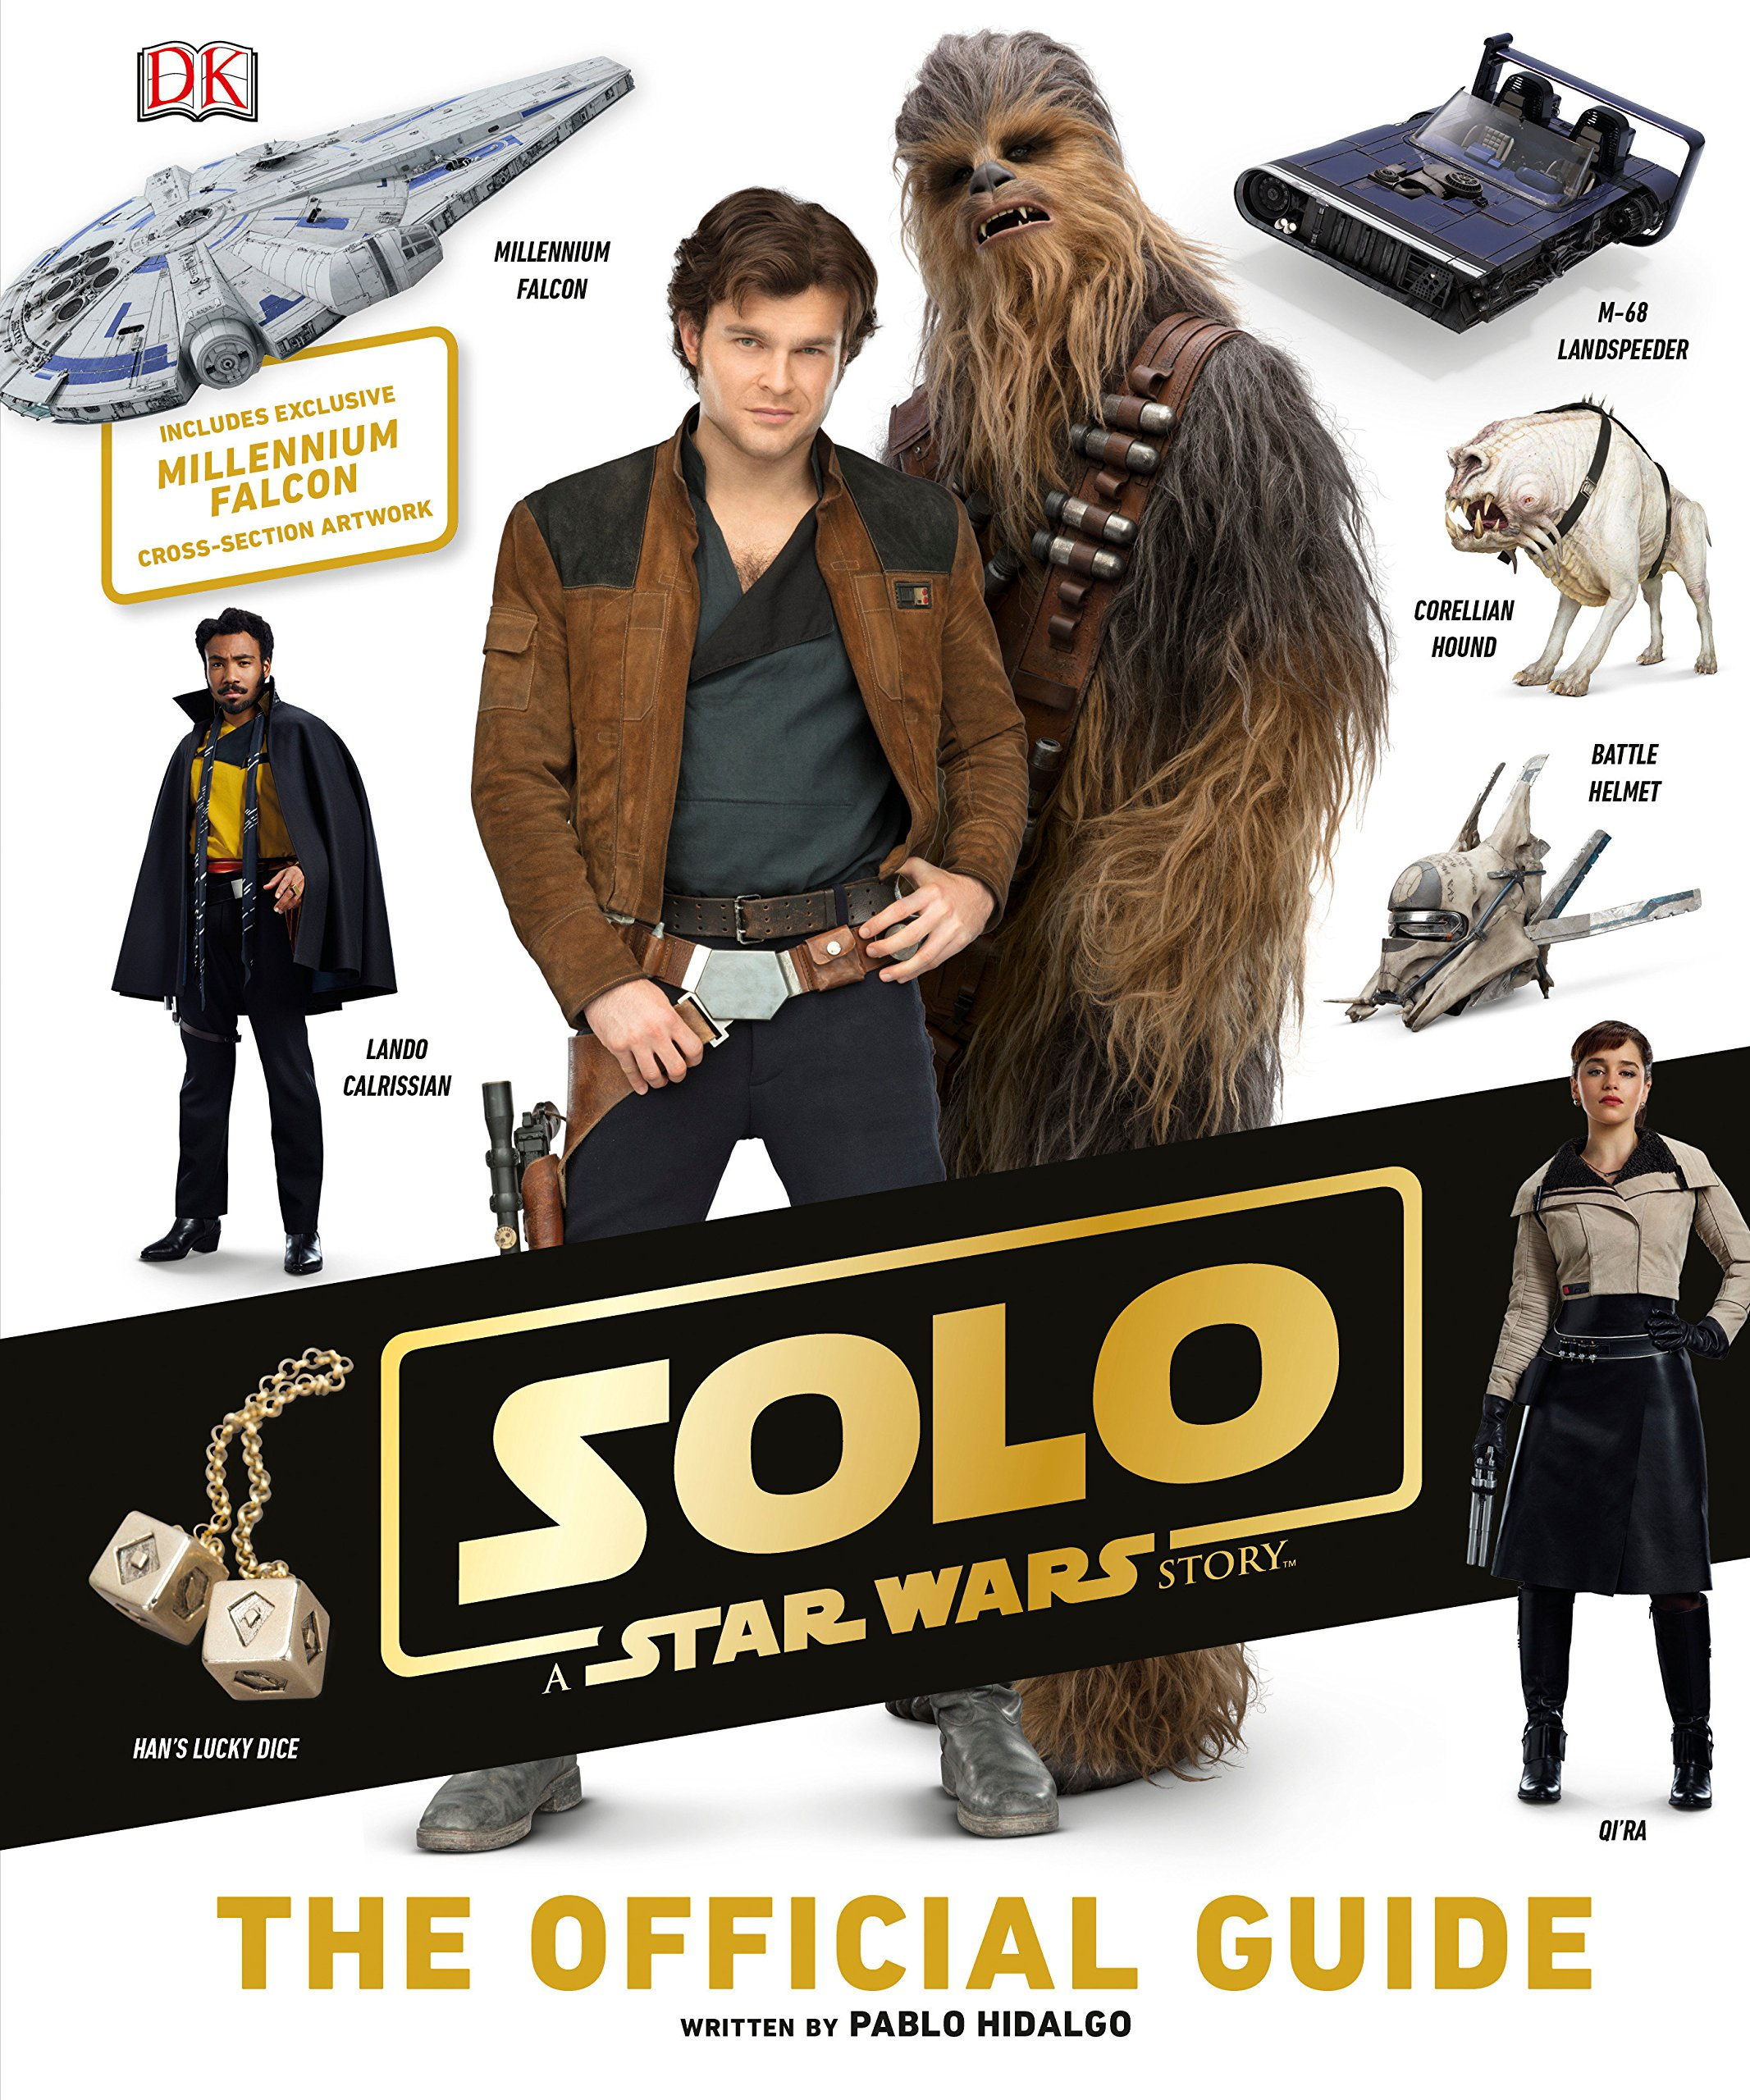 'Solo: A Star Wars Story: The Official Guide' by Pablo Hidalgo (reviewed by Skuldren)